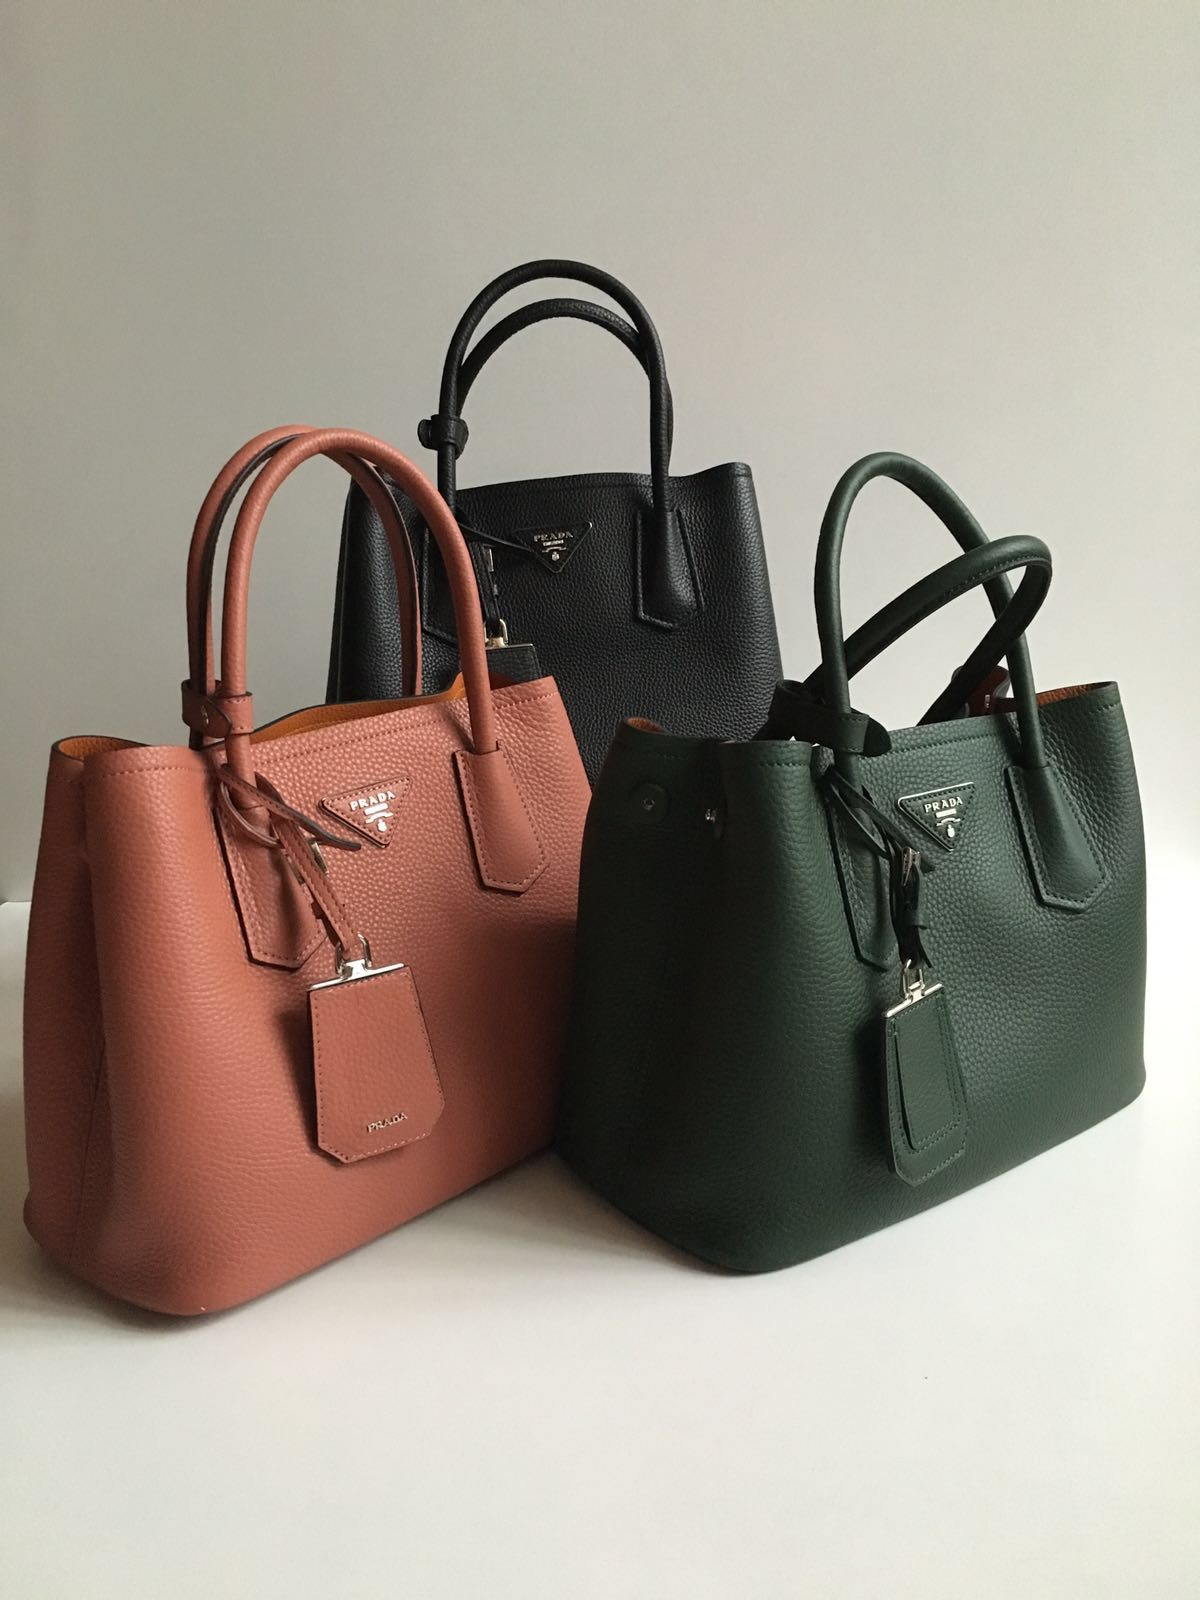 prada bags prices uk